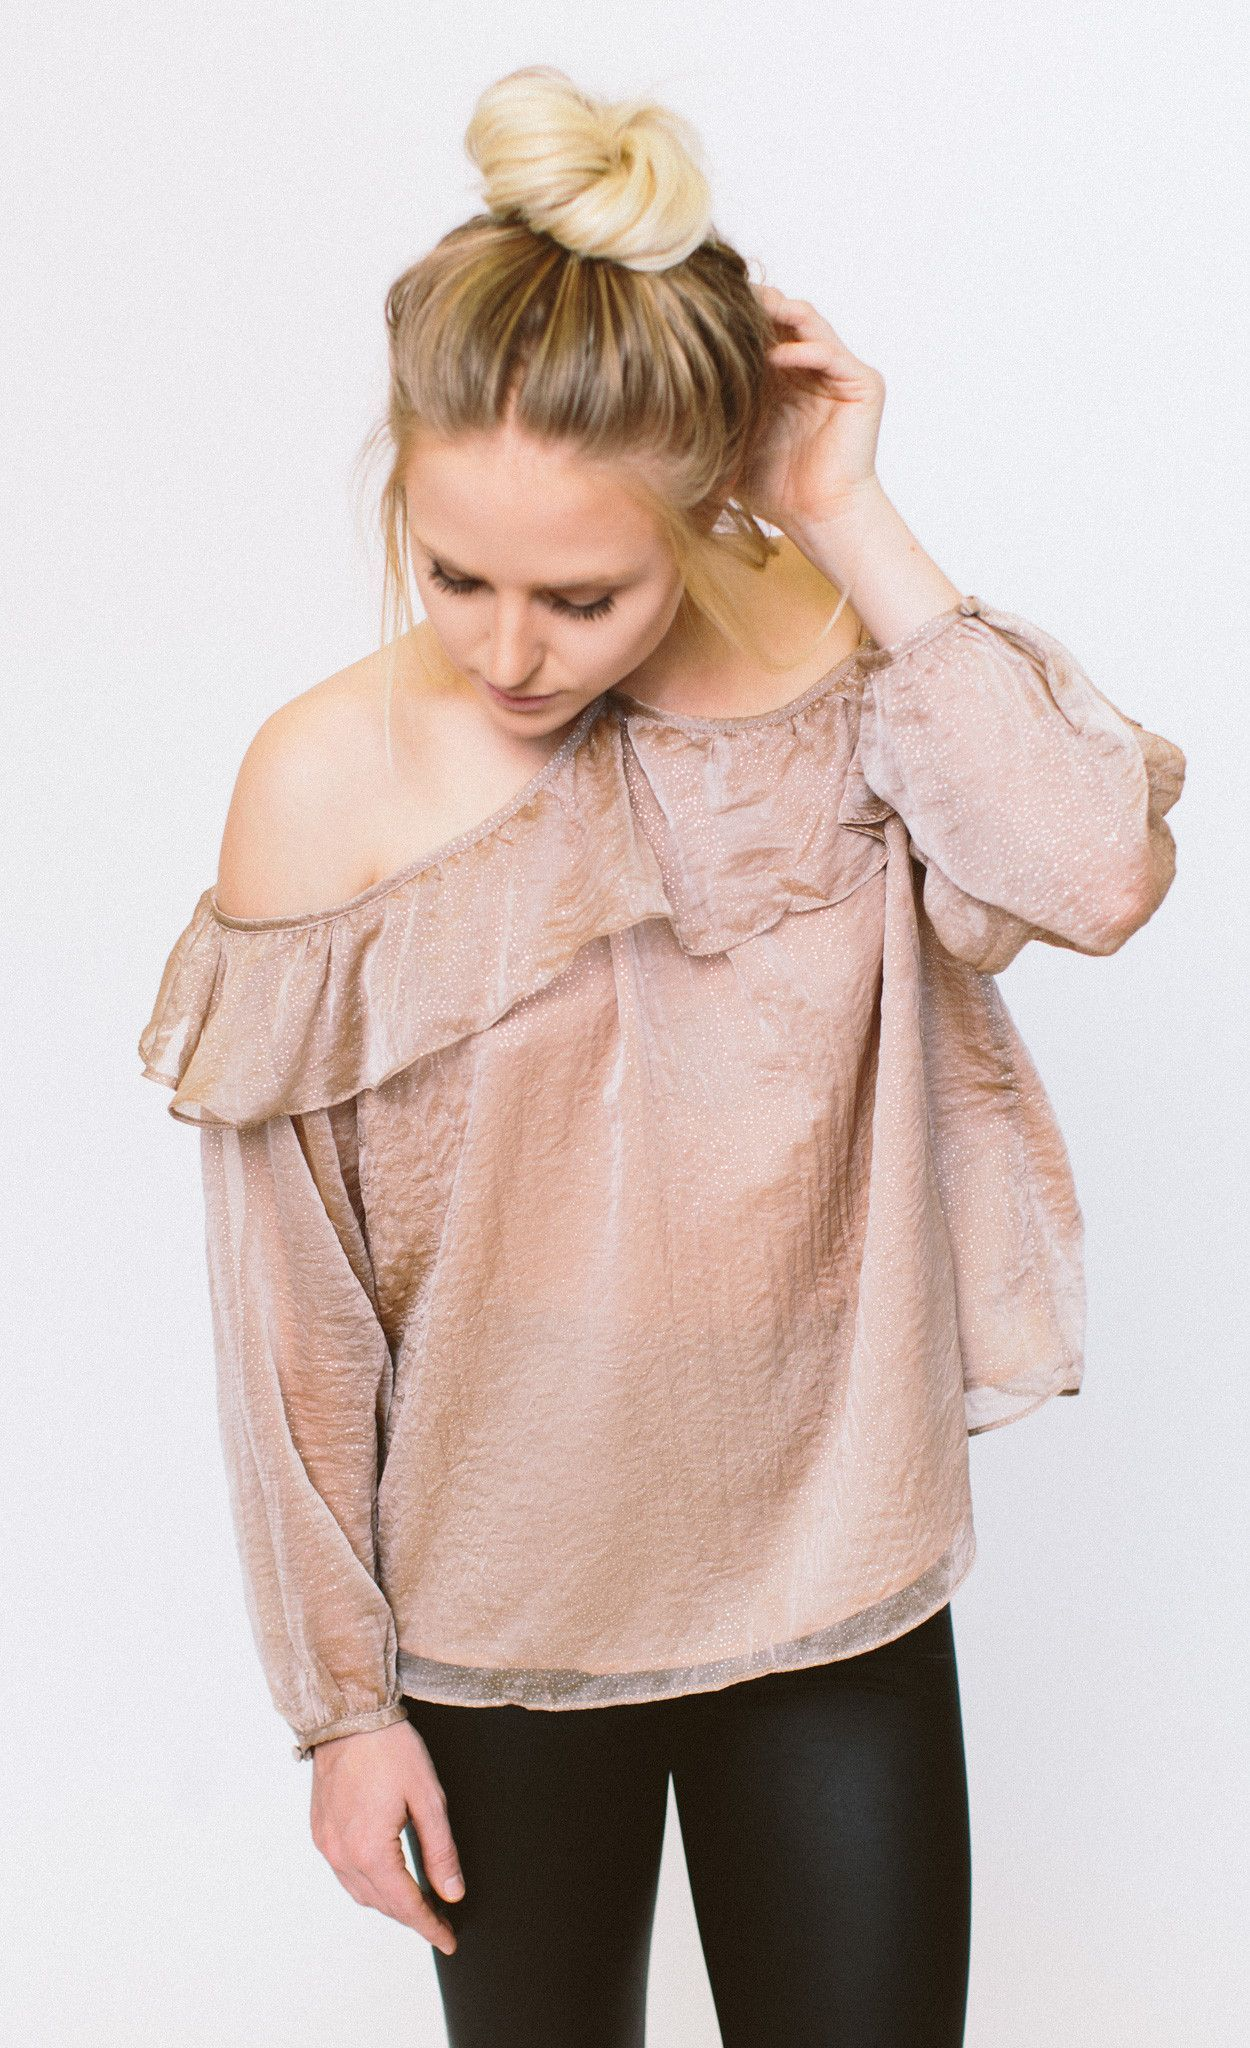 Give Into Me Top by Cheeky Peach Boutique